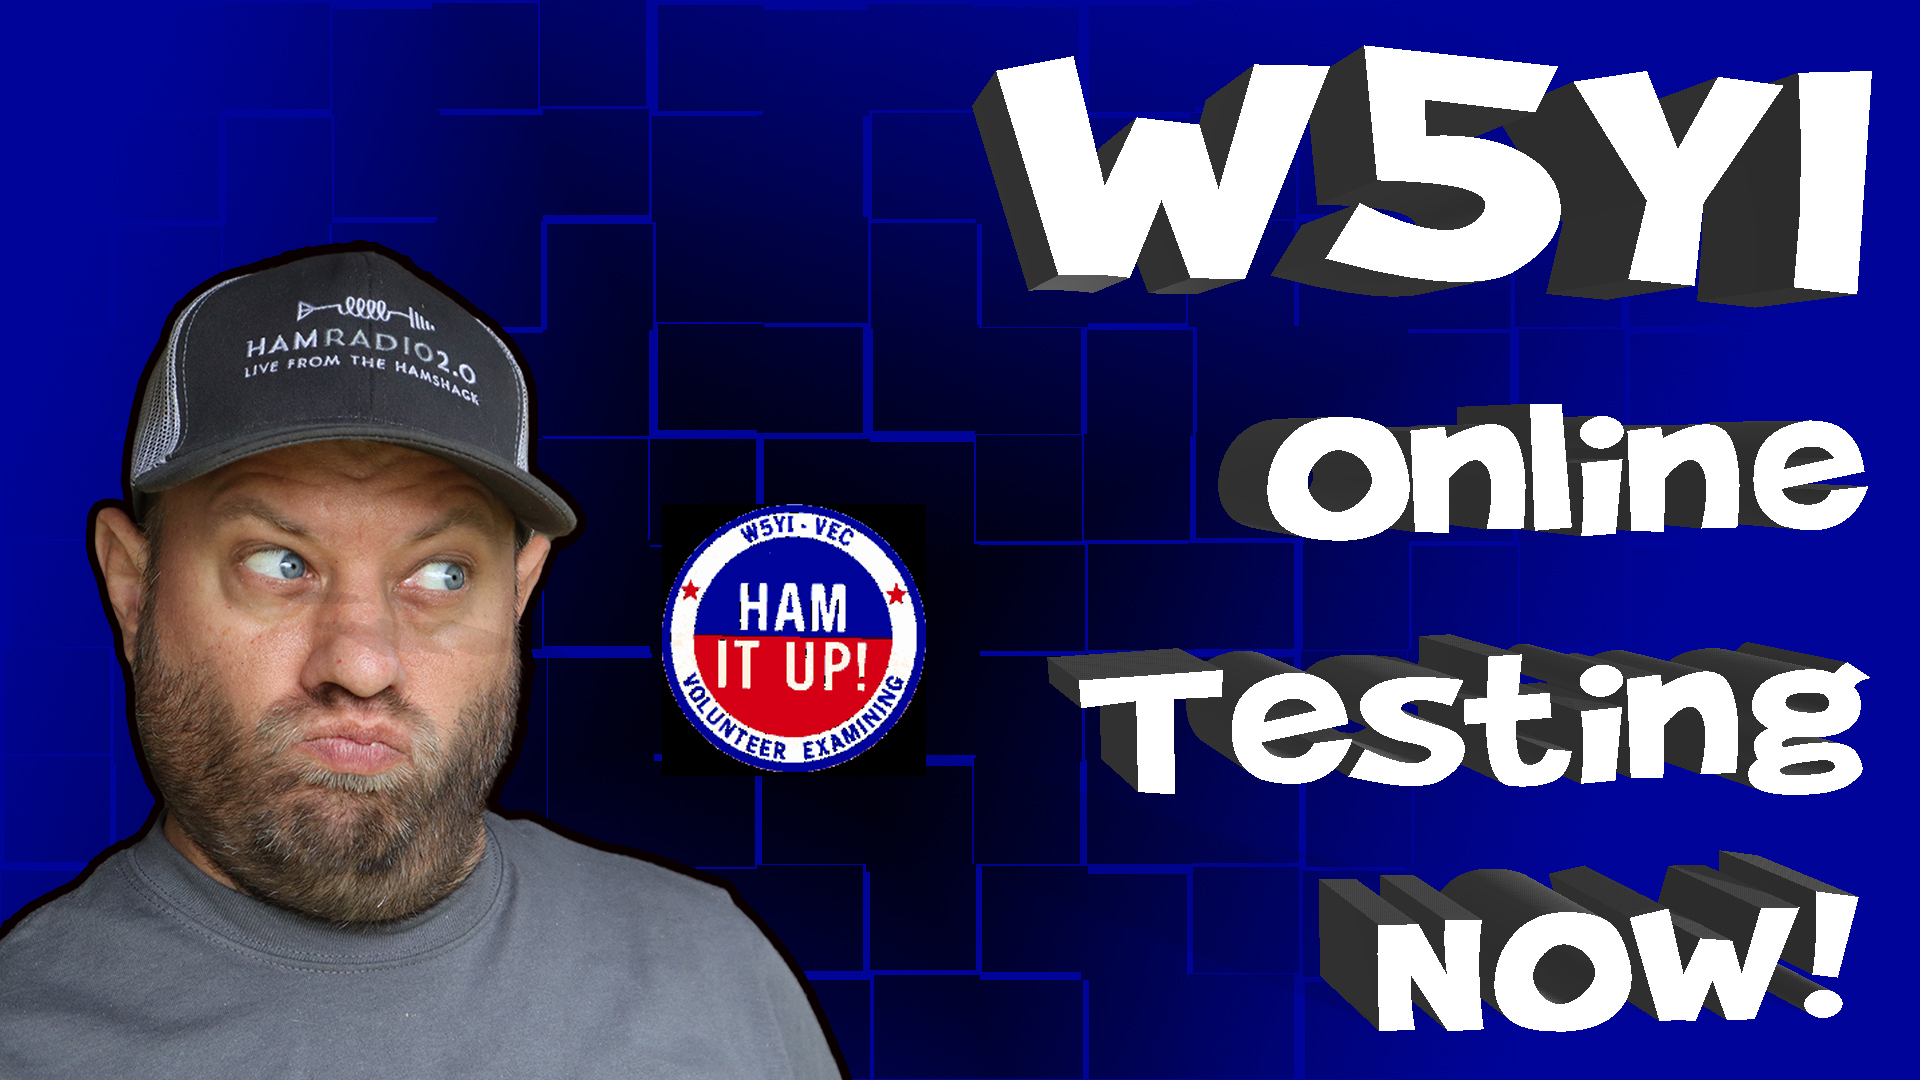 Episode 384: Ham Radio REMOTE Testing with W5YI – Get Your License NOW!